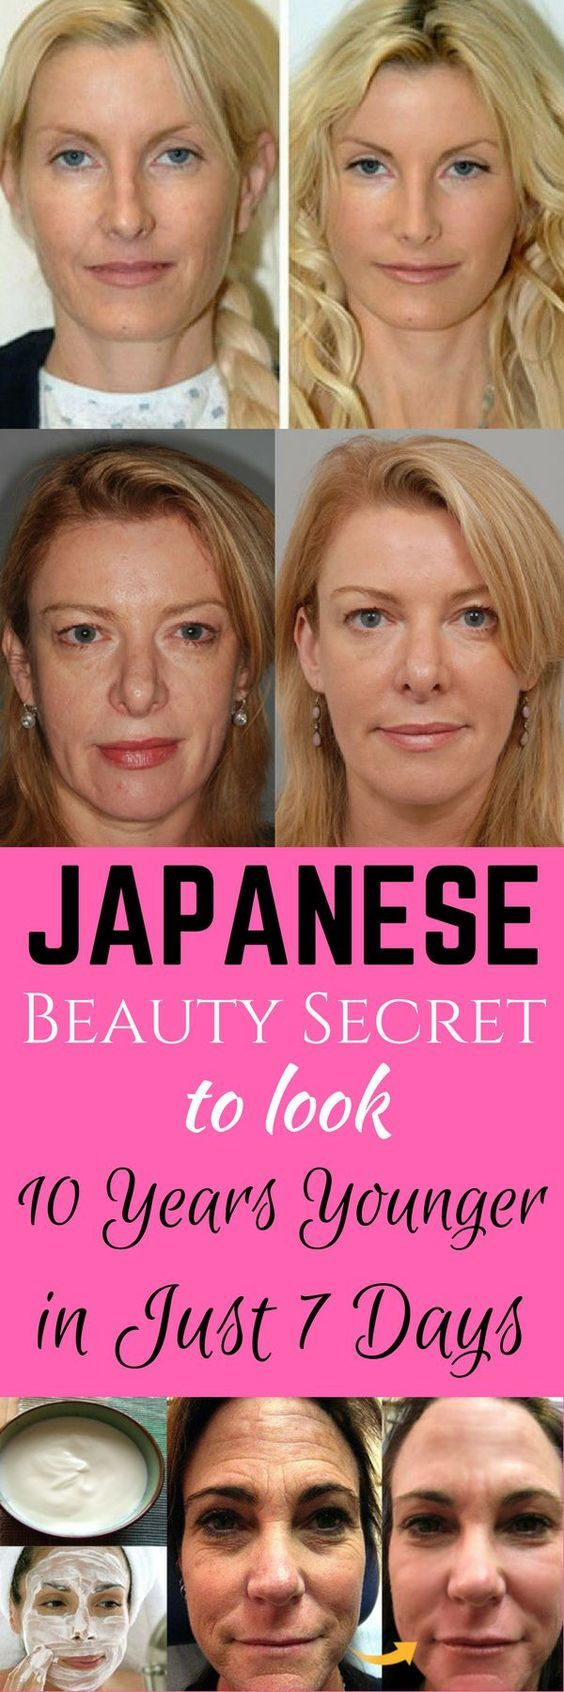 7 Ways You're Aging Your Skin  how to reverse aging skin,  premature aging skin treatment,  premature aging symptoms,  what causes premature aging of the skin,  does makeup give you wrinkles,  skin aging prevention,  premature aging causes,  how to prevent aging skin naturally,